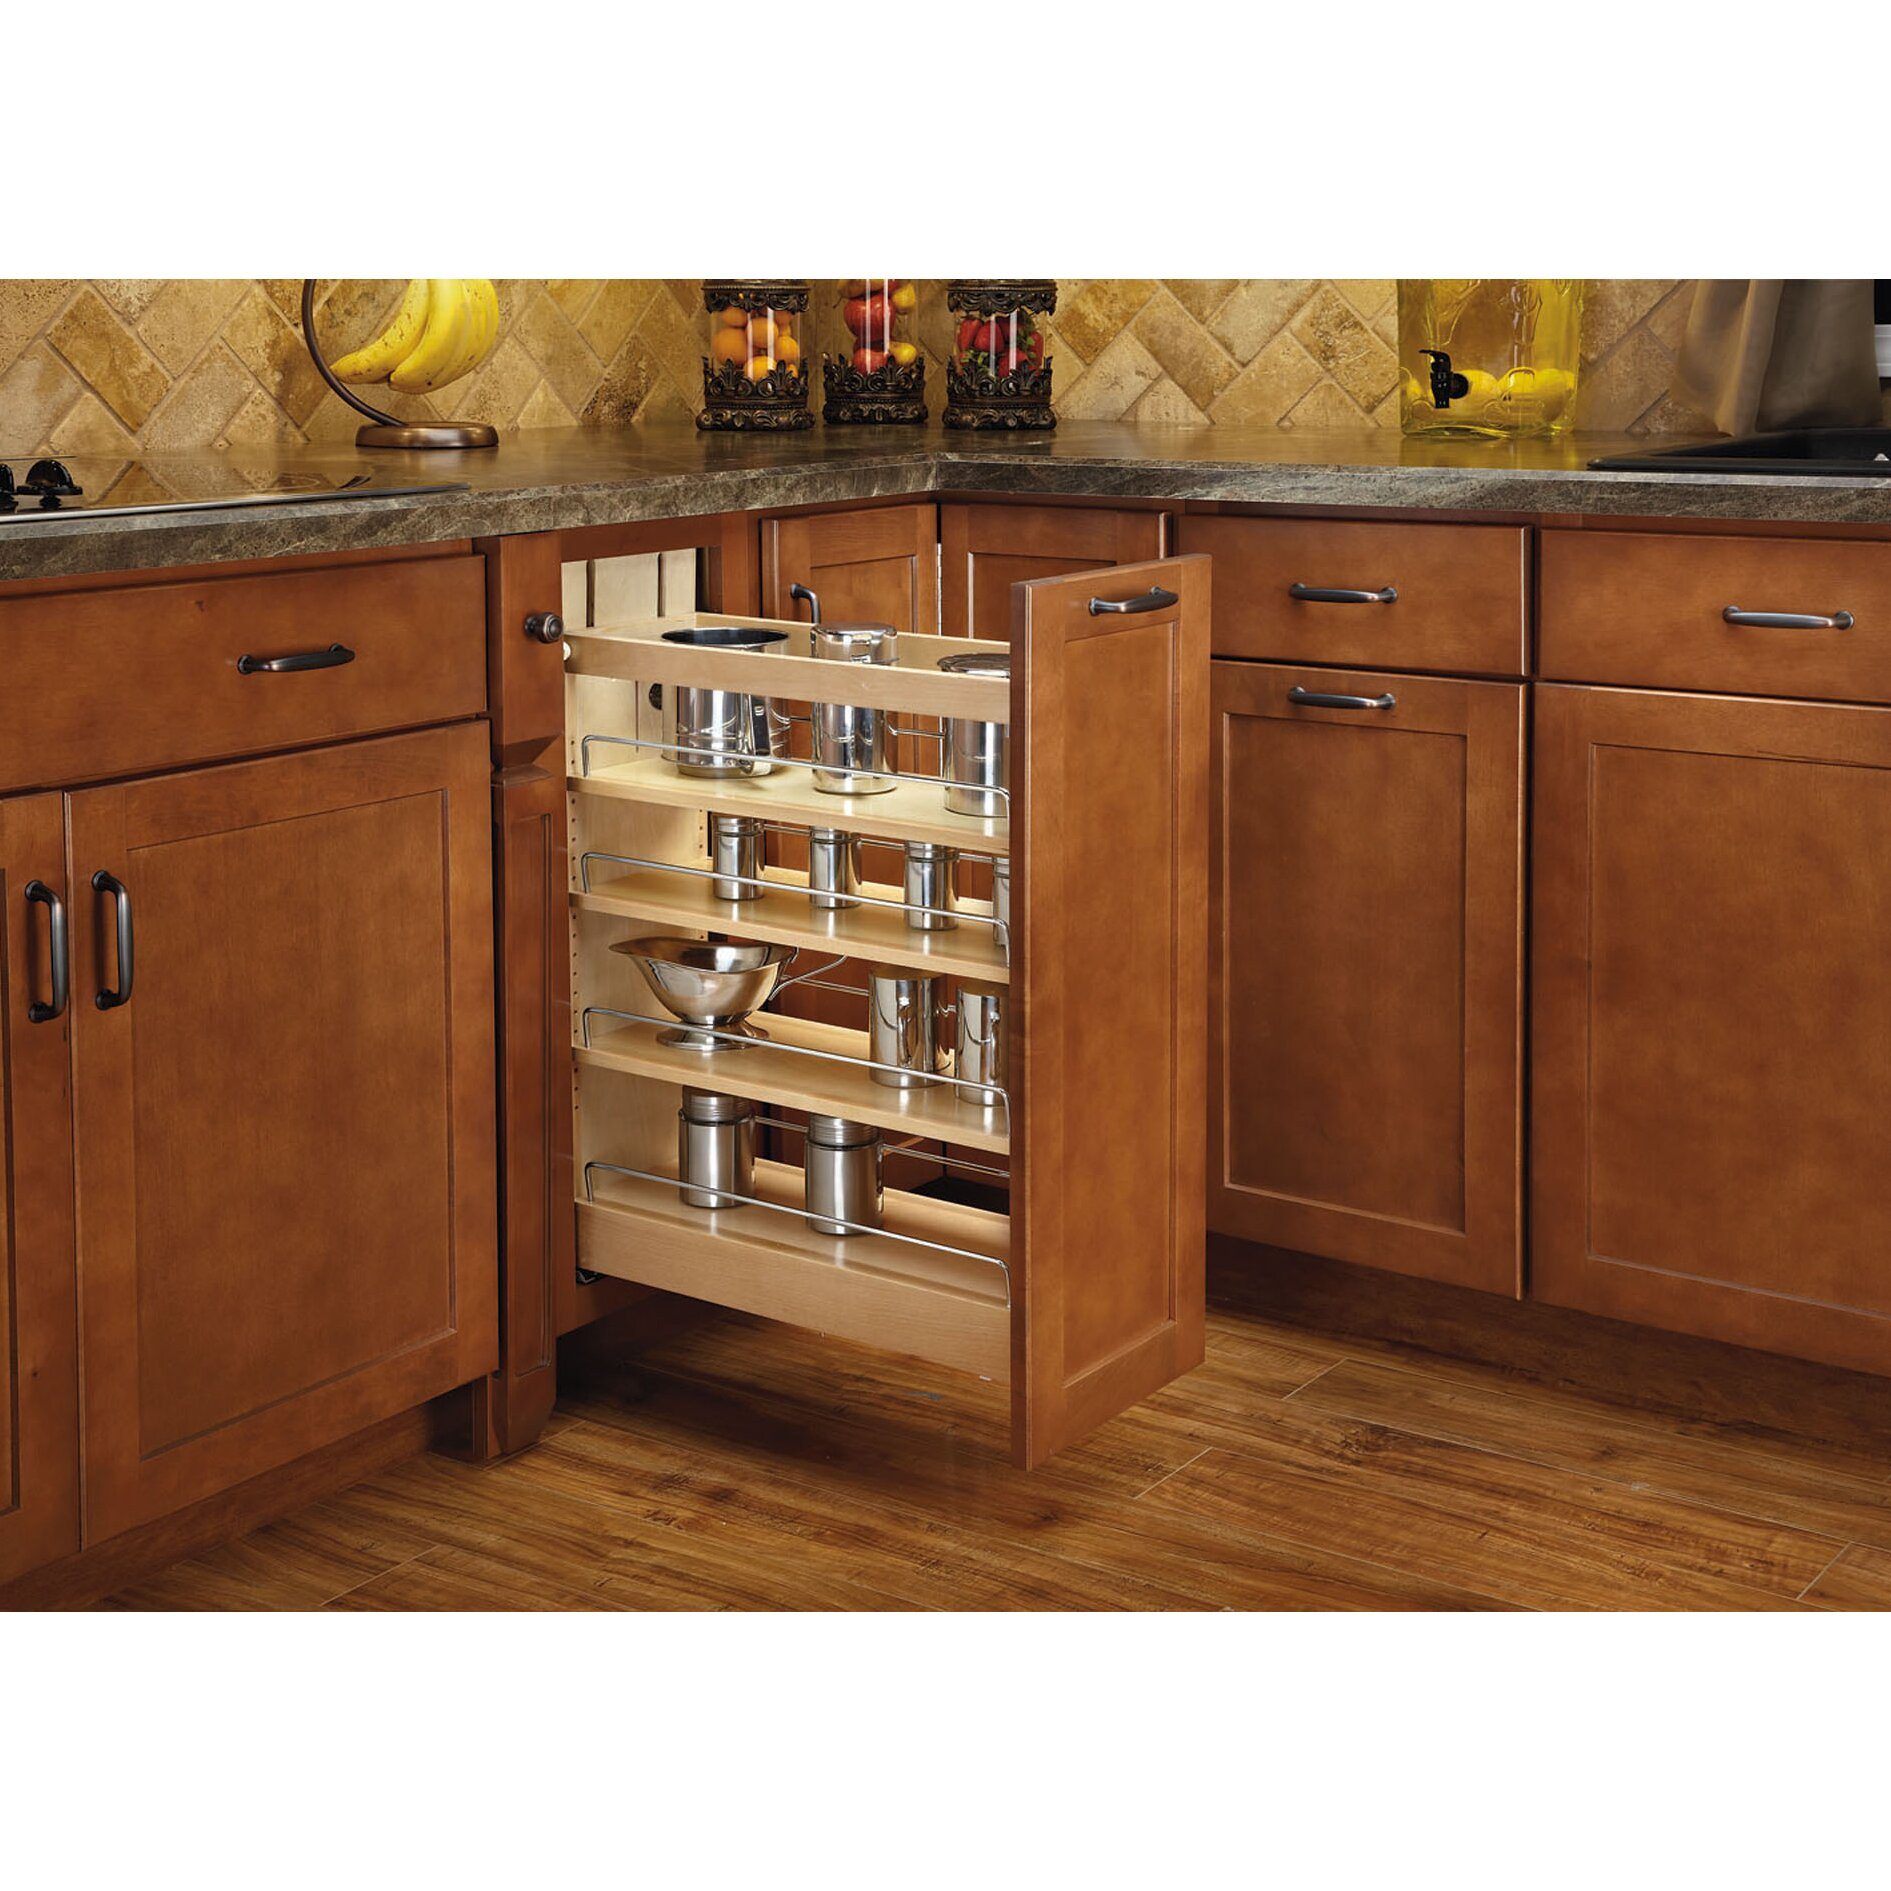 Slide Out Closet Shelves: Rev-A-Shelf Pull-Out Wood Base Cabinet Organizer & Reviews